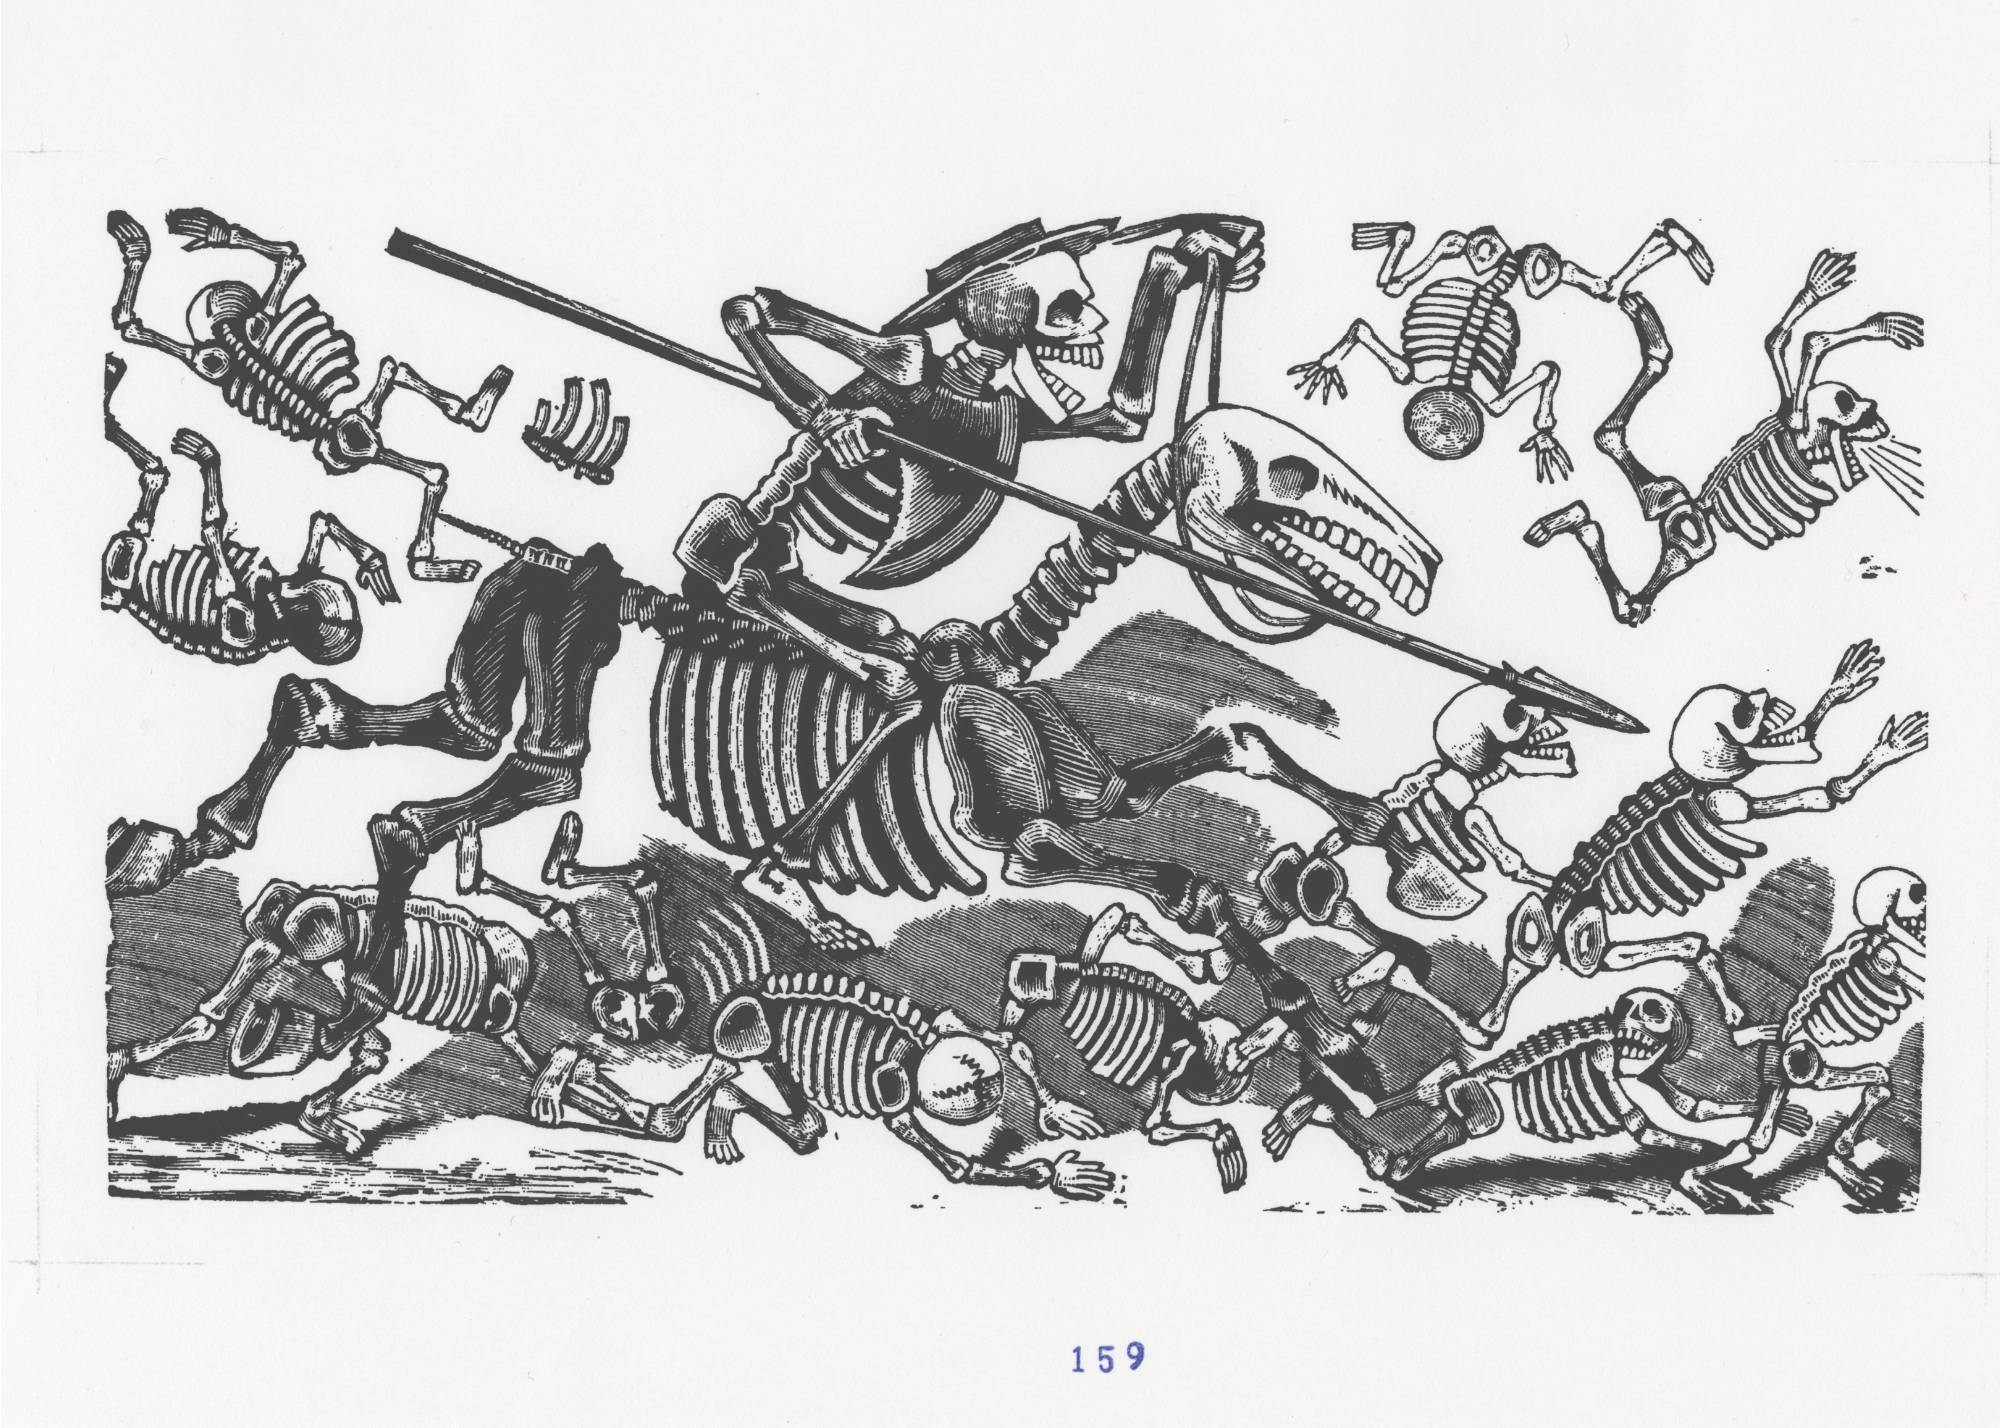 print of skeleton with long spear riding skeleton horse while other skeletons run and fall around him